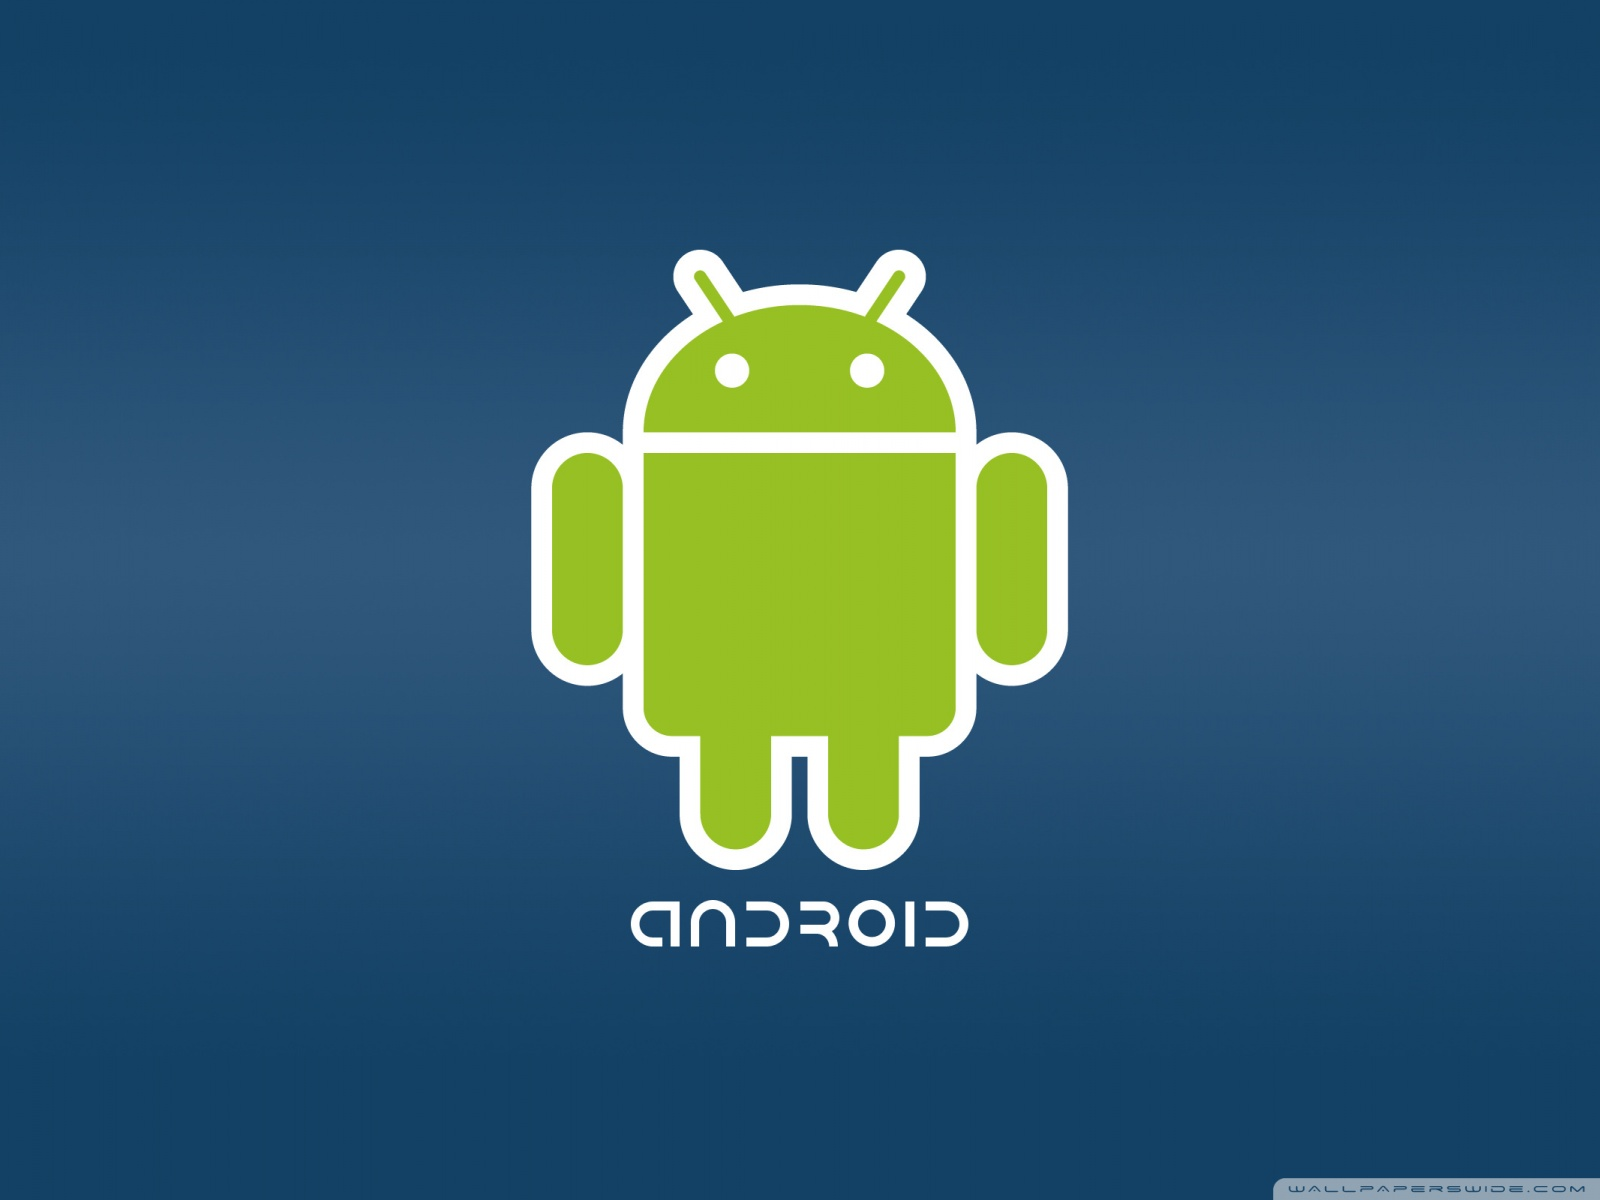 Free Android logo phone wallpaper by owiggins